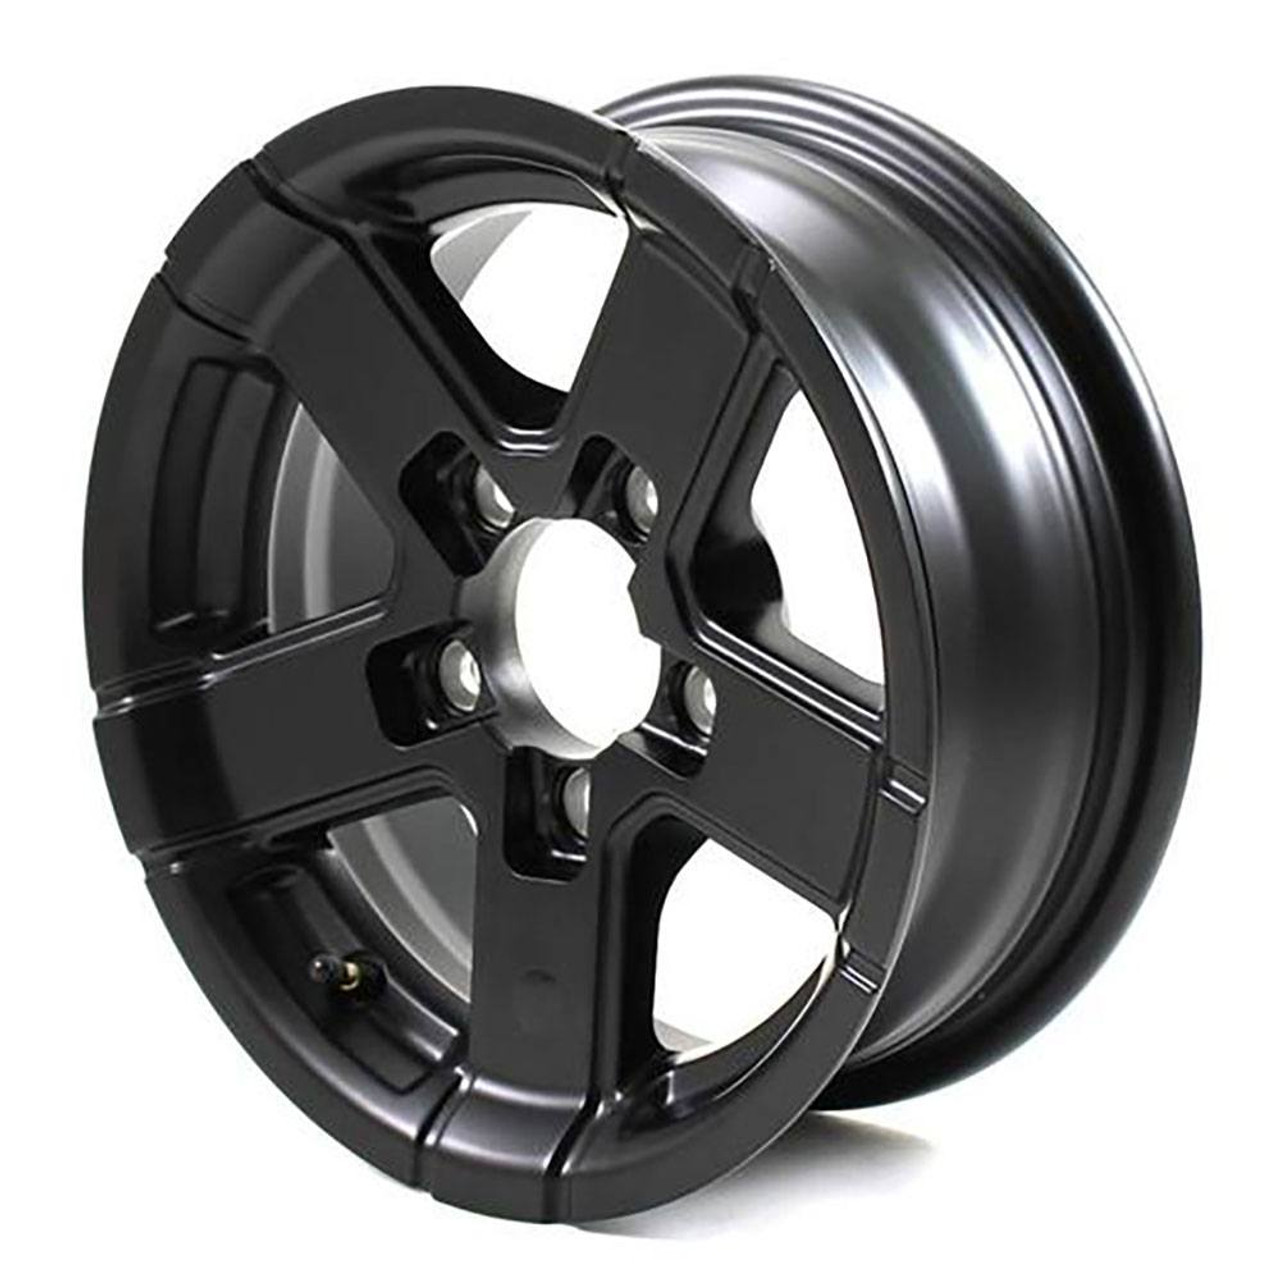 "14X5.5 5-Lug on 4.5"" Aluminum Series 07 Trailer Wheel - Full Black - 745545FPBM"